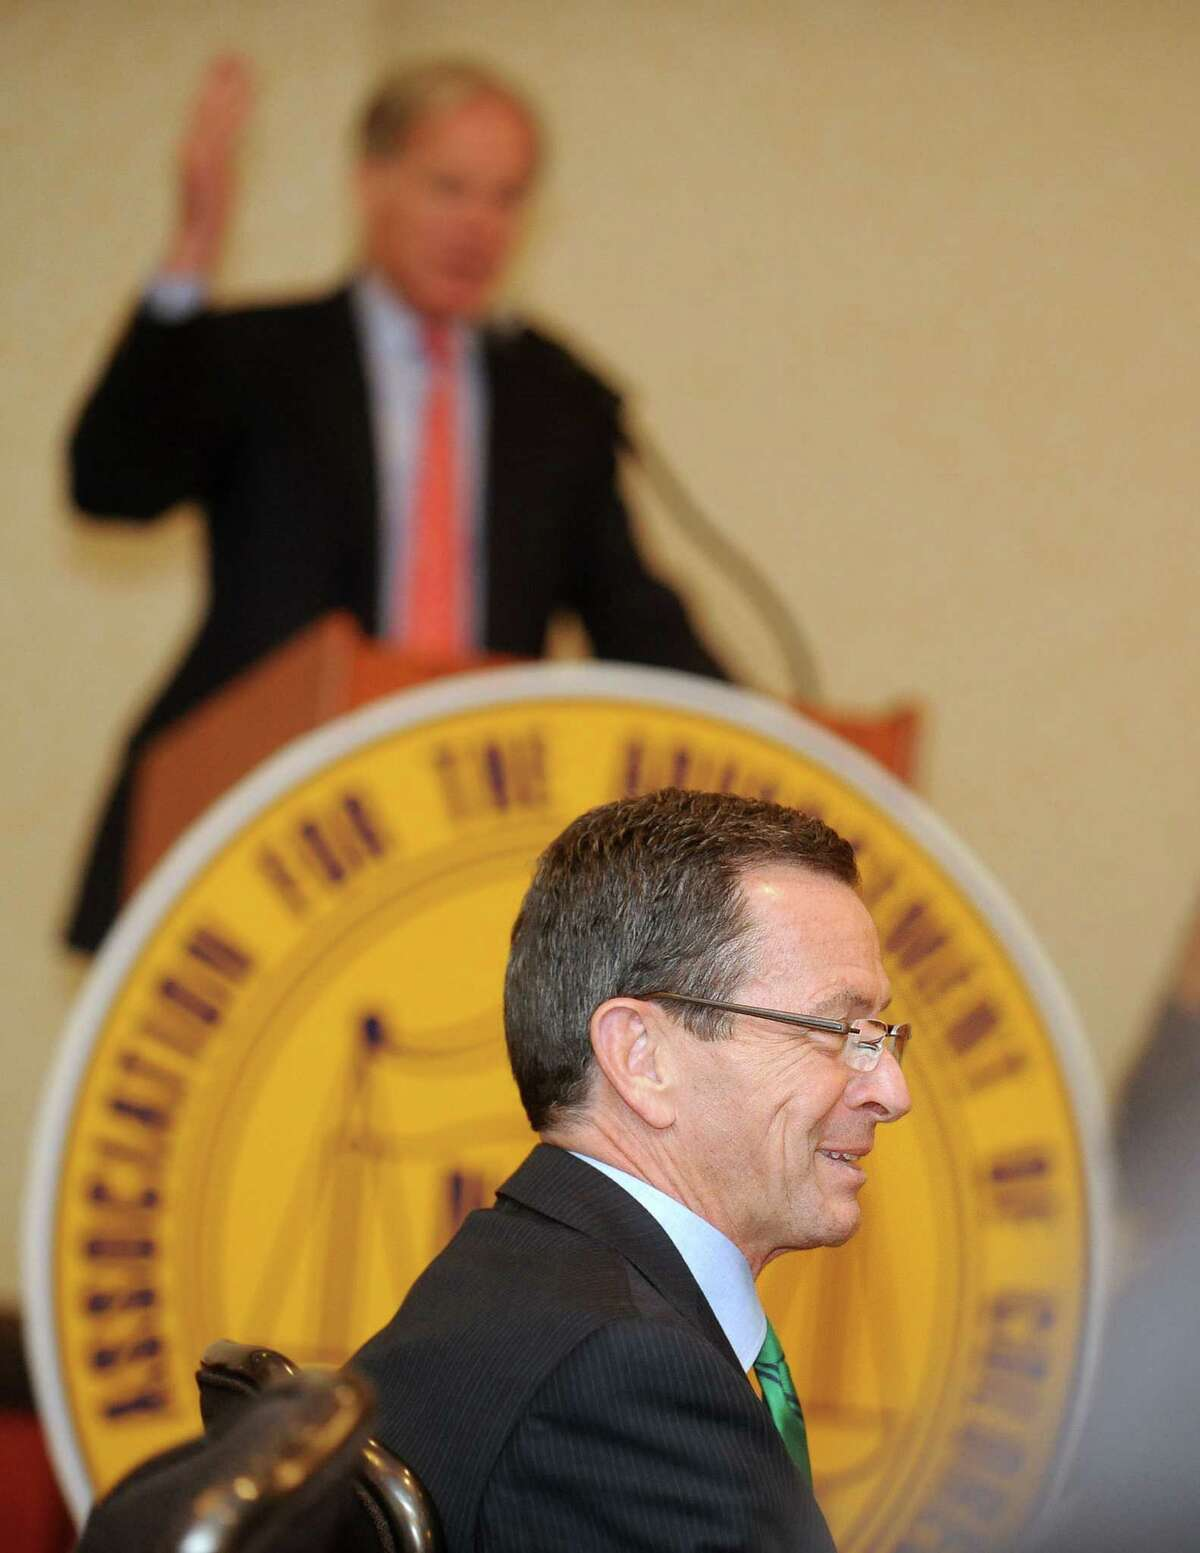 Gov. Dannel P. Malloy listens to Republican challenger Tom Foley speak Saturday, Nov. 1, 2014, during an NAACP Get Out the Vote rally at the Holiday Inn in Bridgeport, Conn.